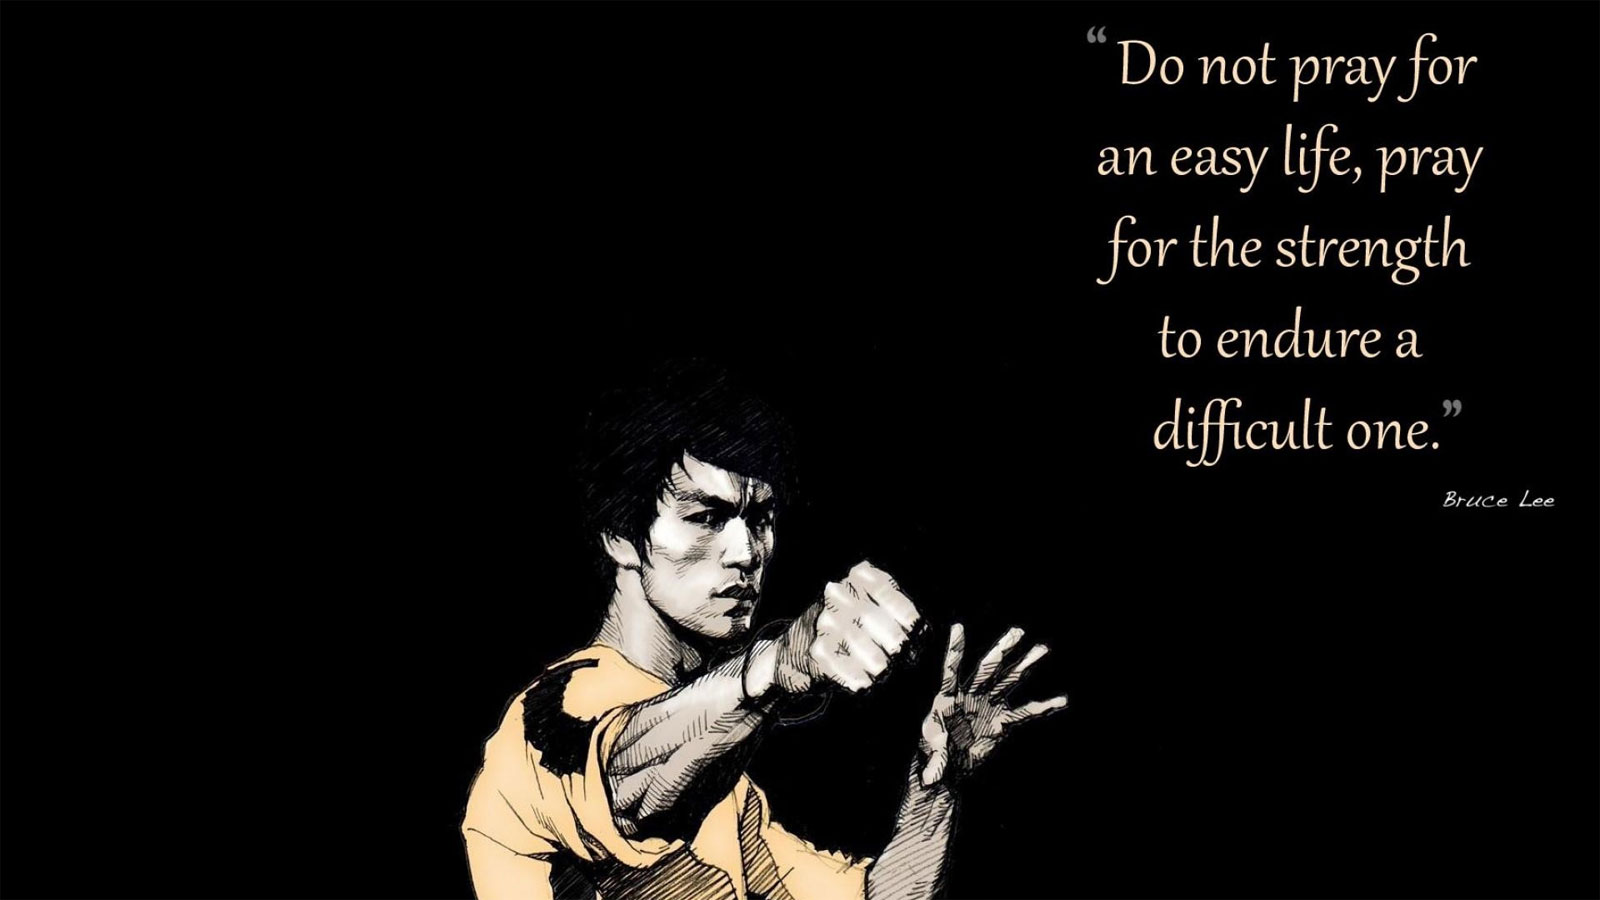 Marvelous Motivational Bruce Lee Quot 115 Best Motivational Wallpaper Examples With  Inspiring Quotes